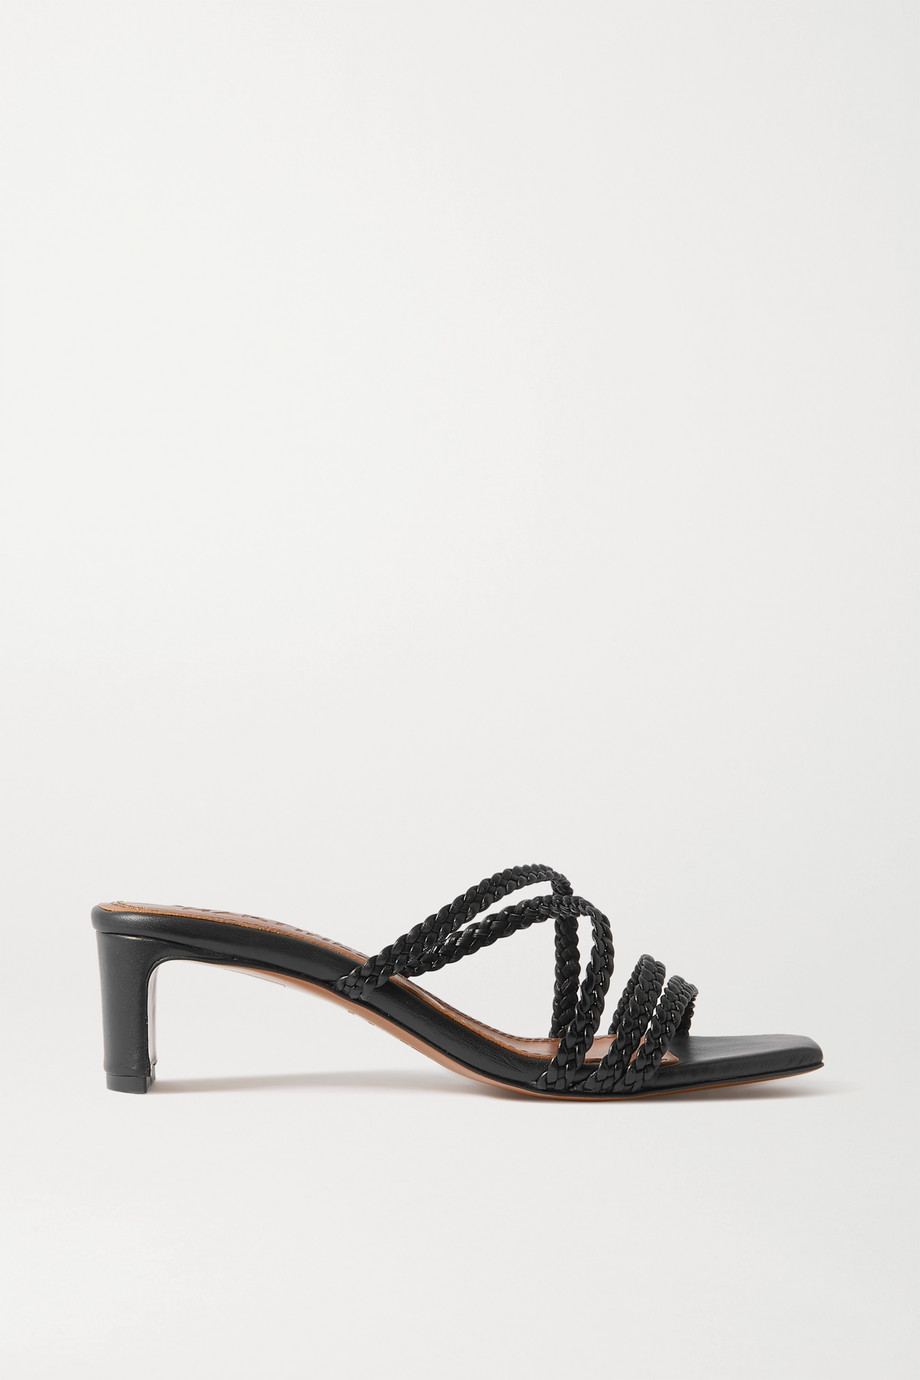 Souliers Martinez Ana braided leather mules